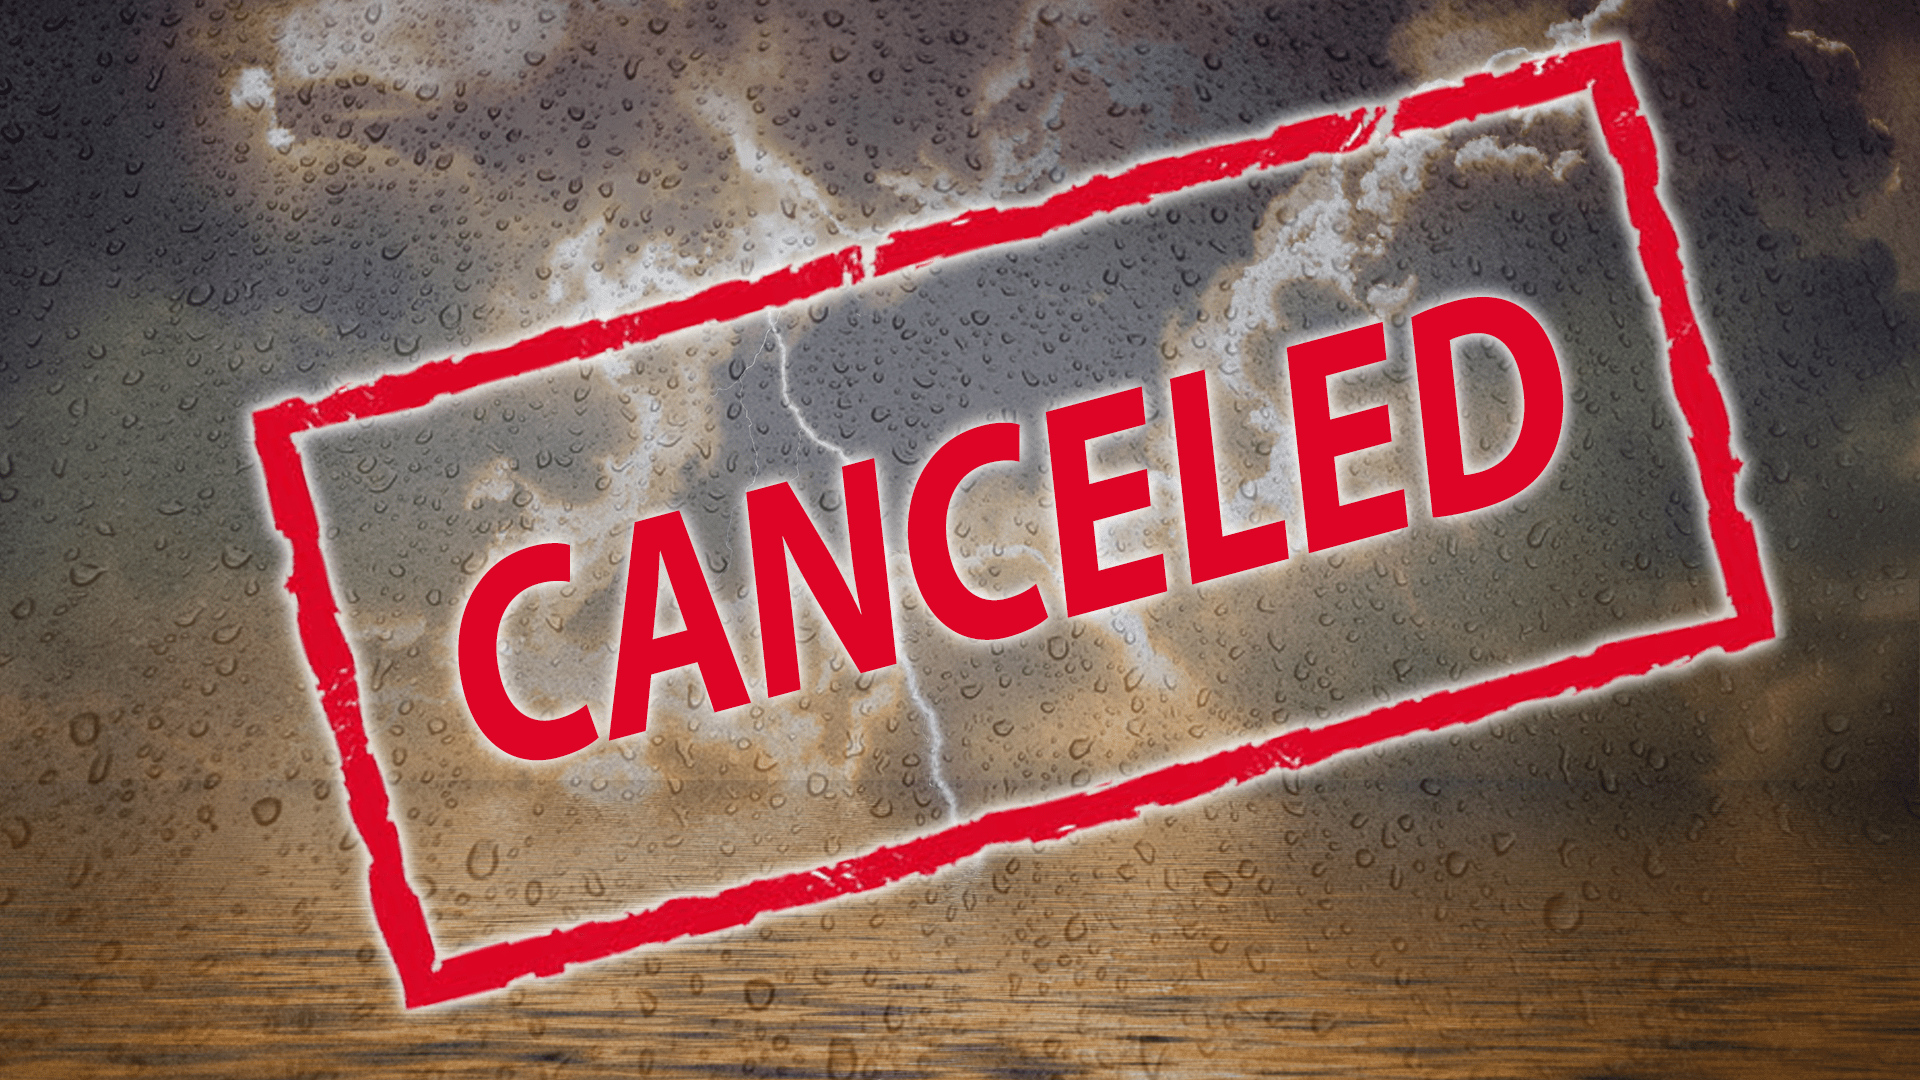 Cancelled_1523652390163.png